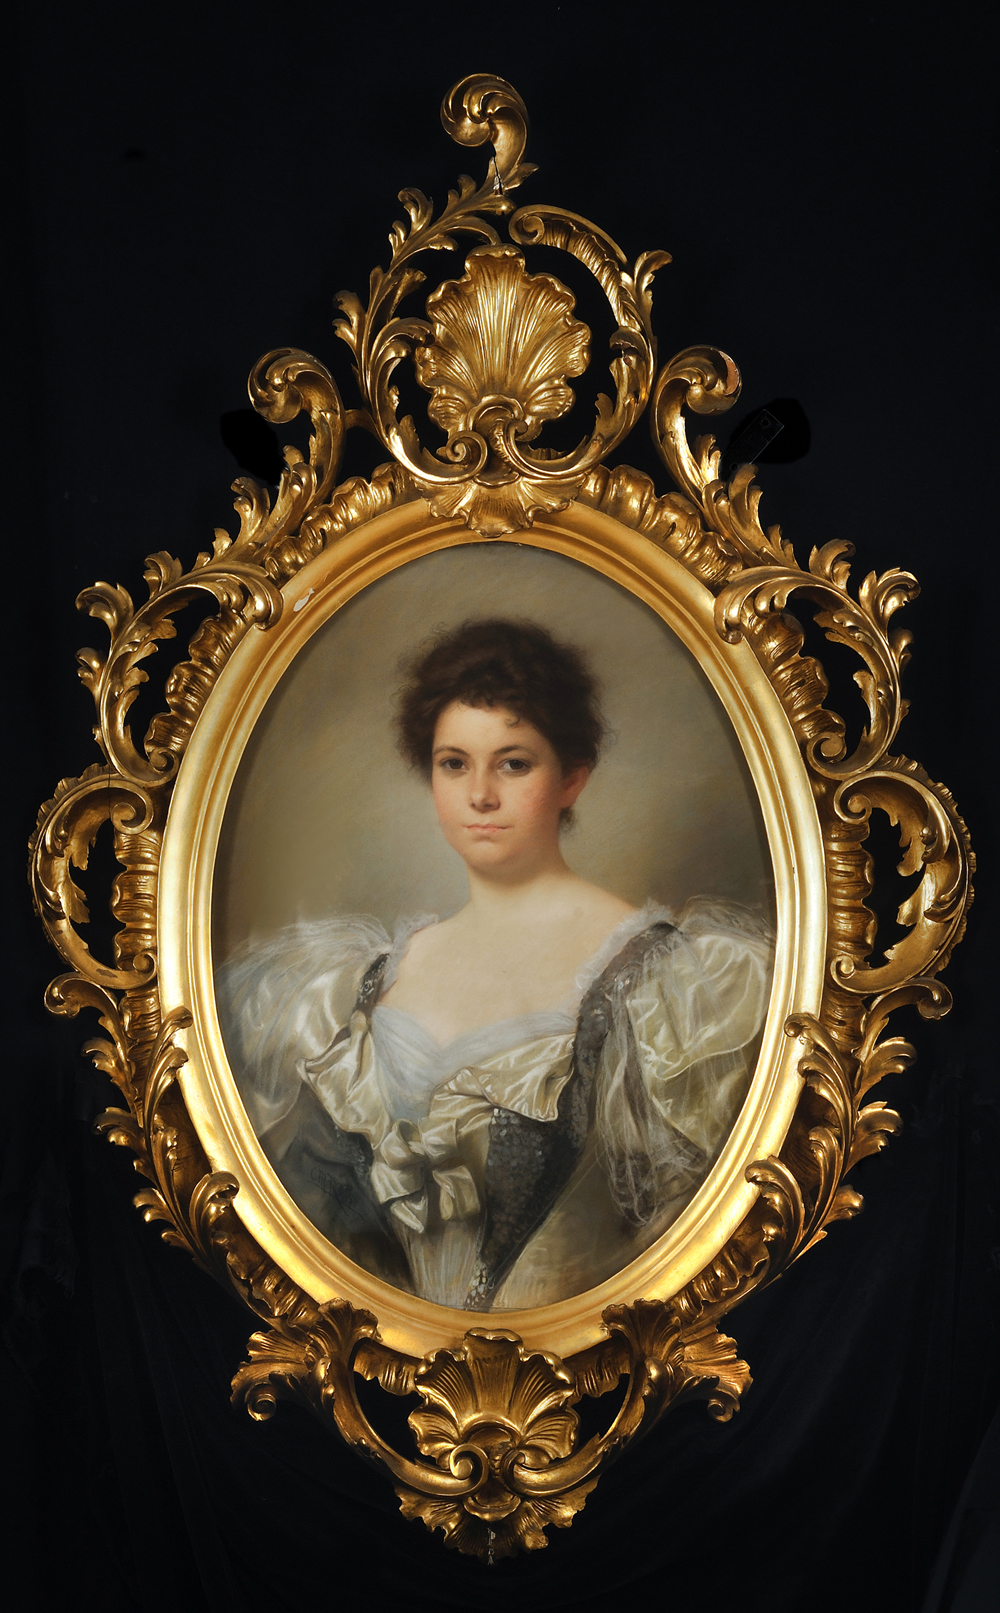 Isabel Anderson by Christian M. Ross, 1896